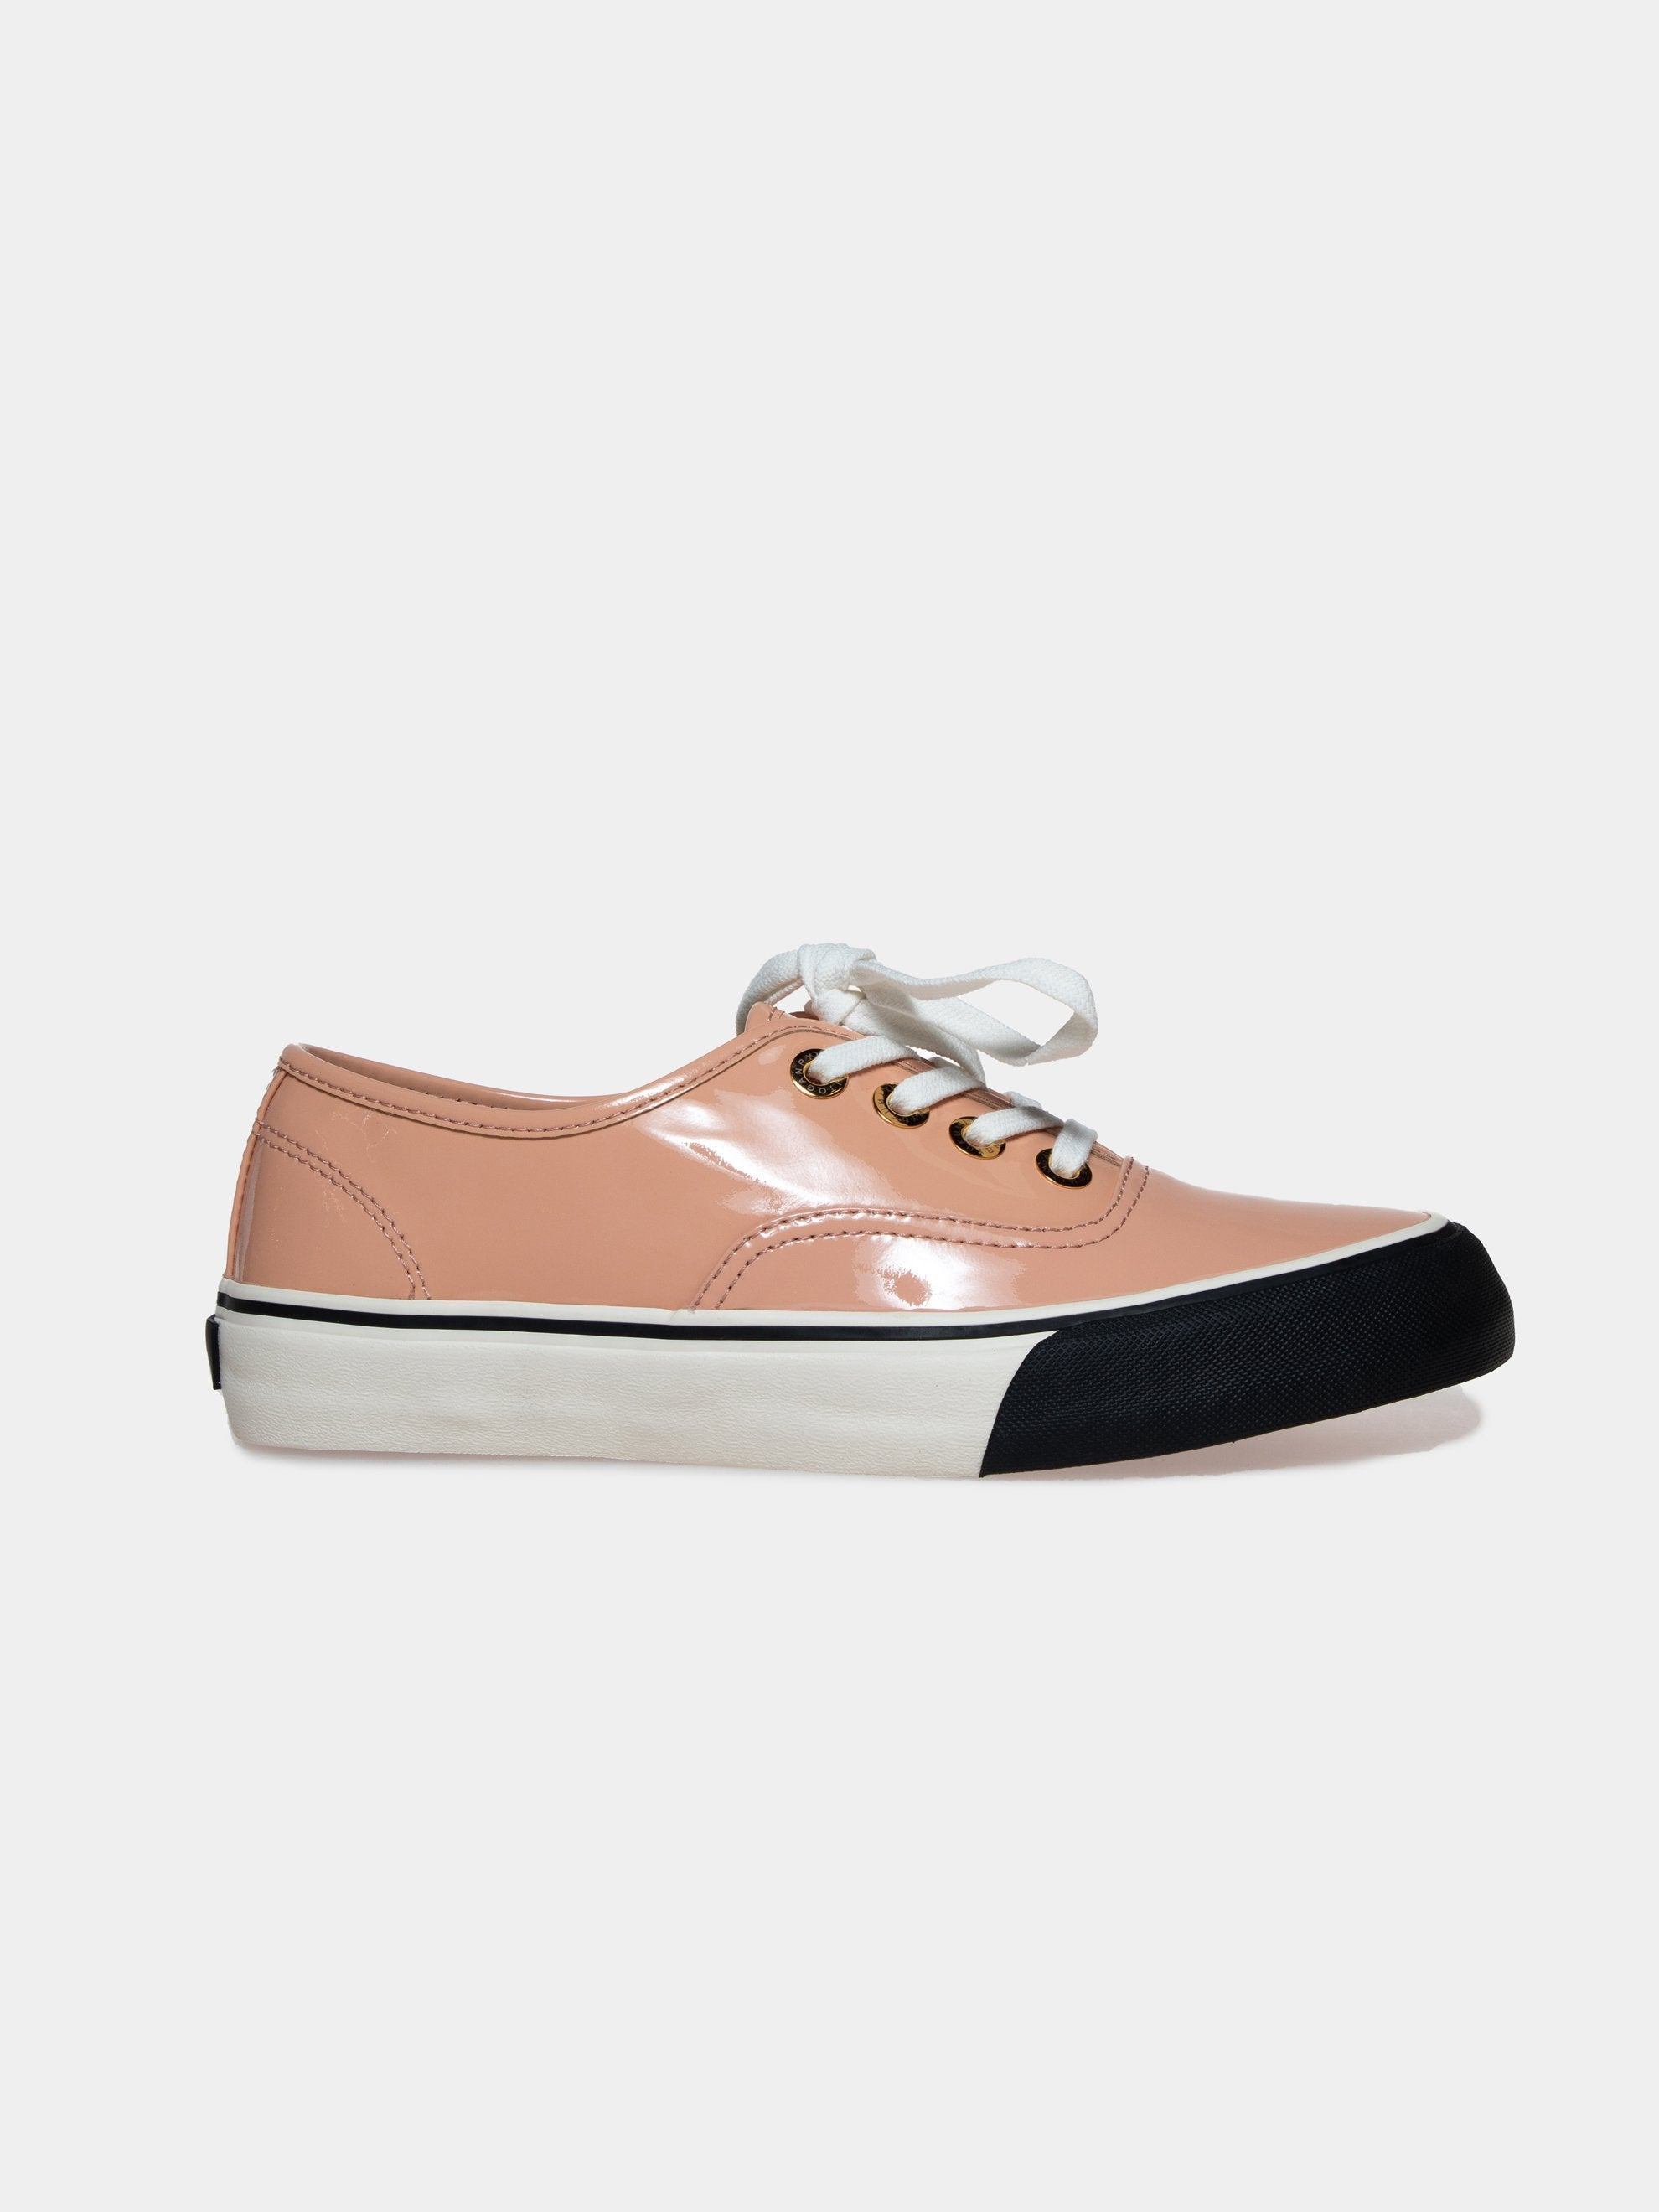 Pink/Beige Leather Skate Sneakers 1